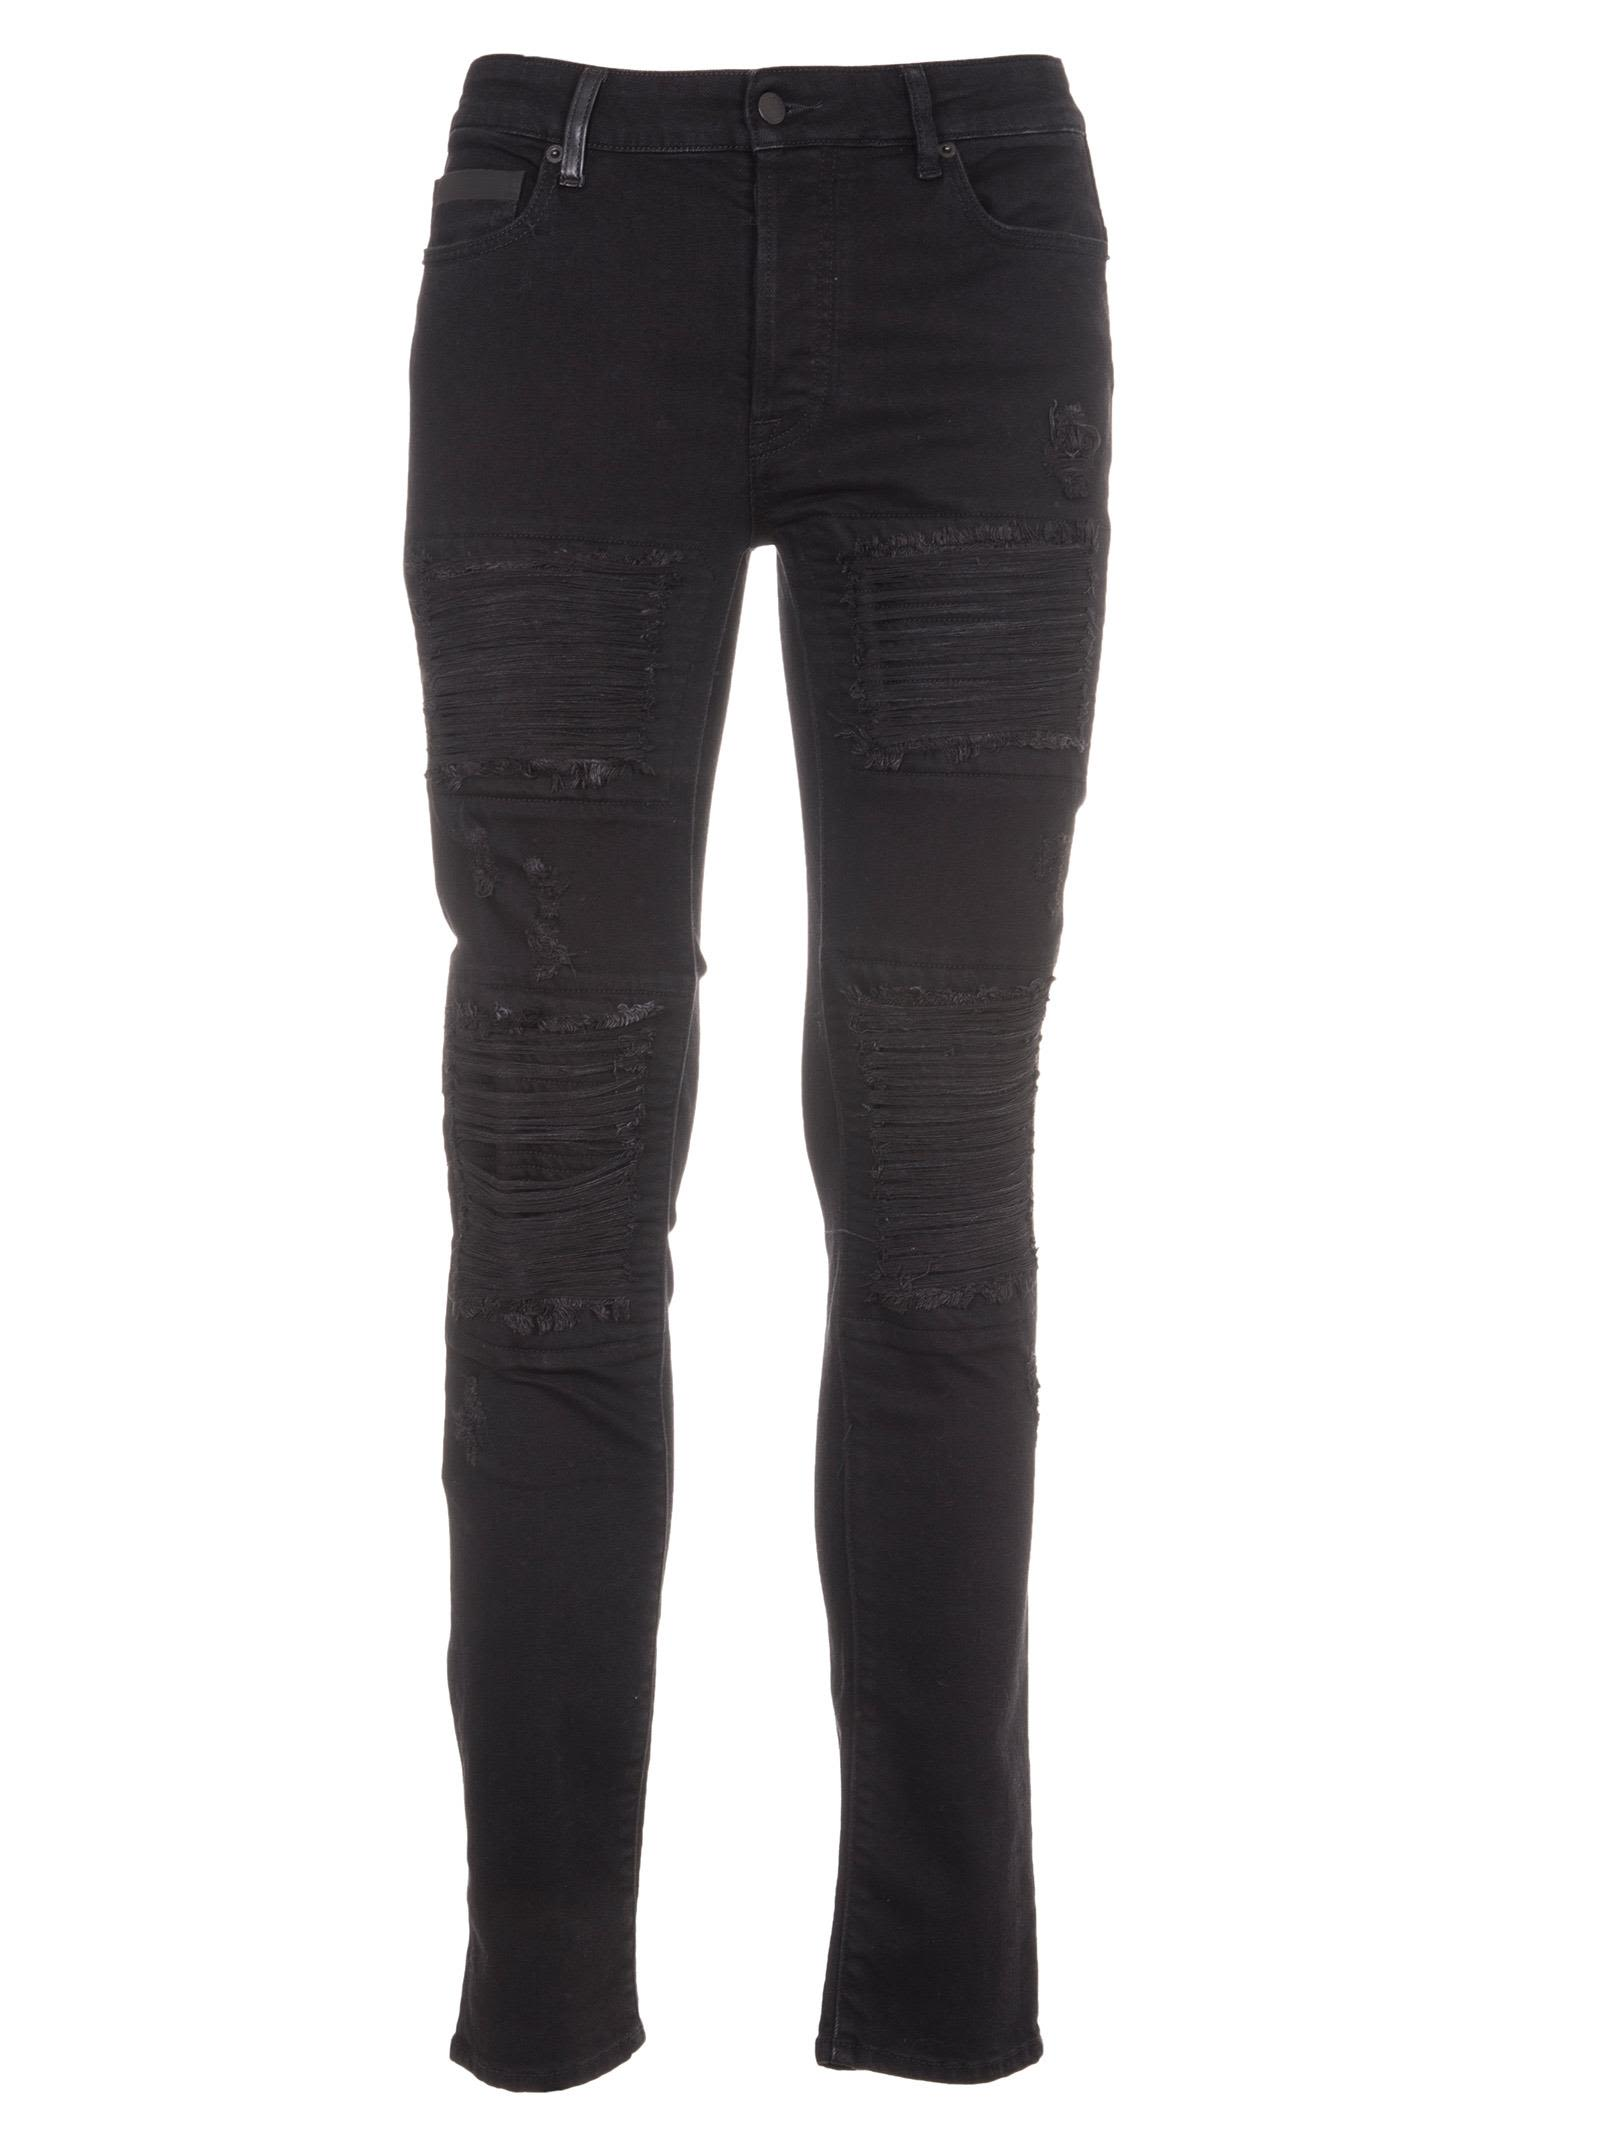 Marcelo Burlon Black Distressed Slim Jeans